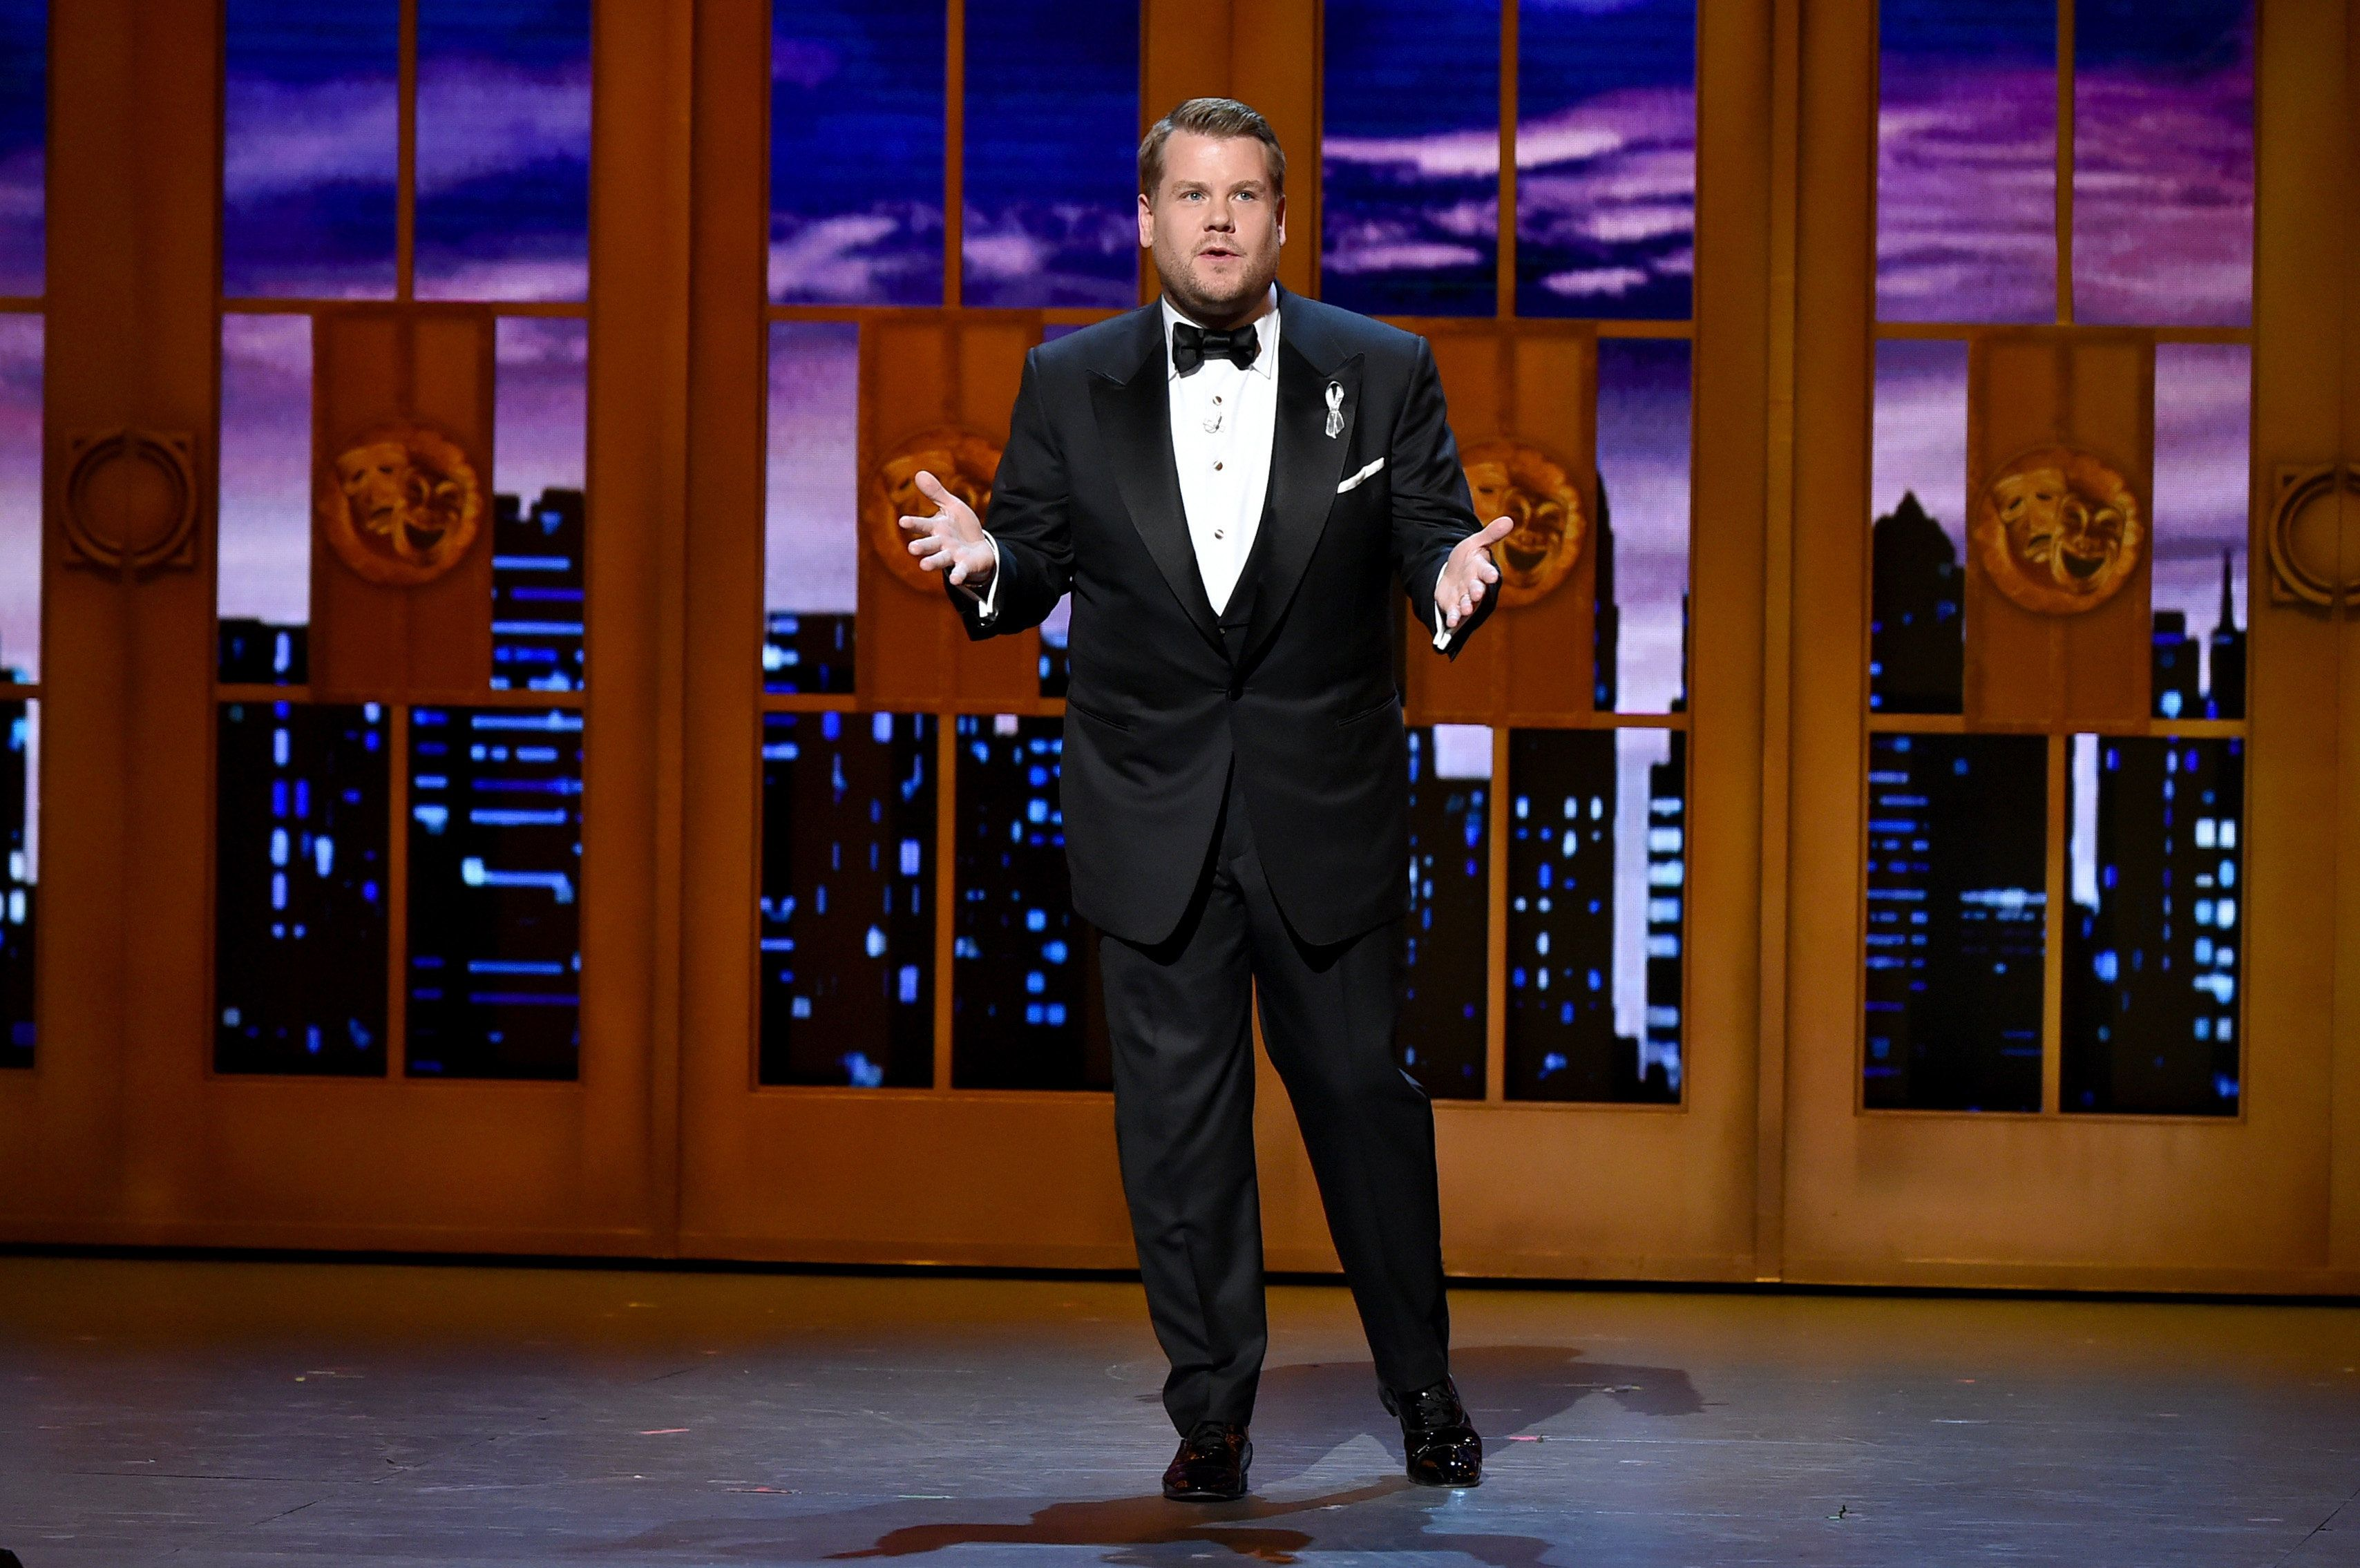 James Corden speaks onstage during the 70th Annual Tony Awards at The Beacon Theatre.